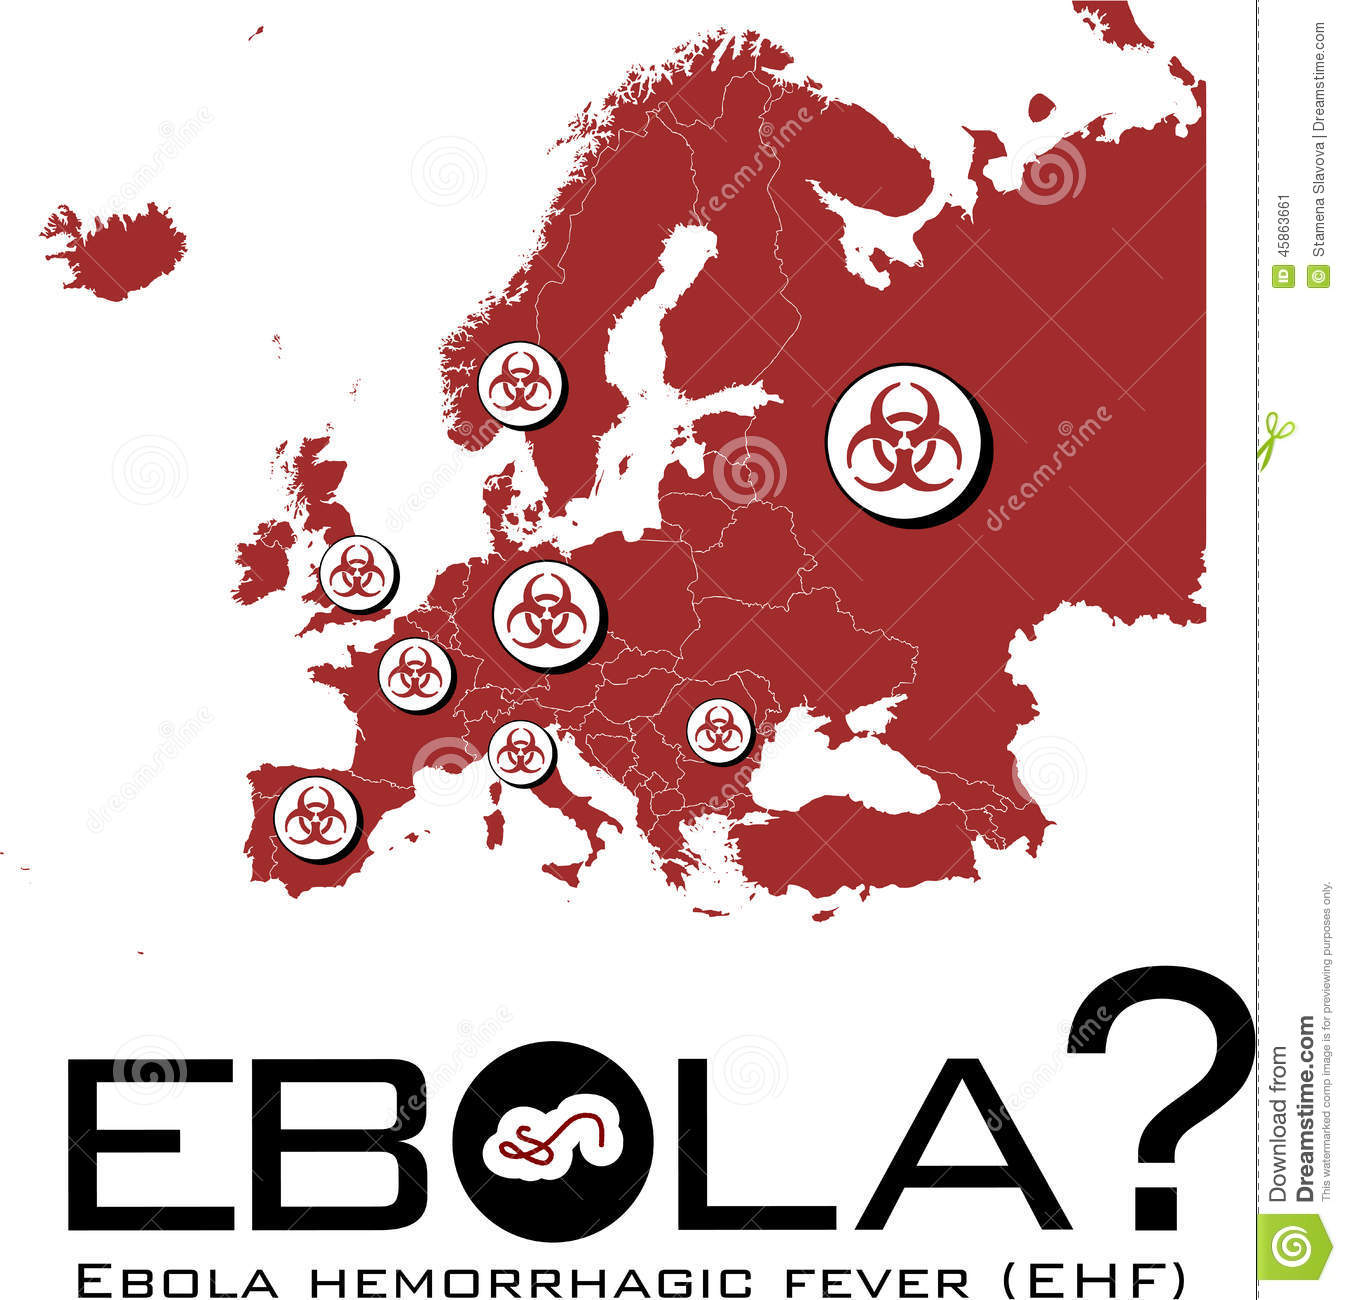 Europe Map With Ebola Text And Biohazard Symbol Stock Vector